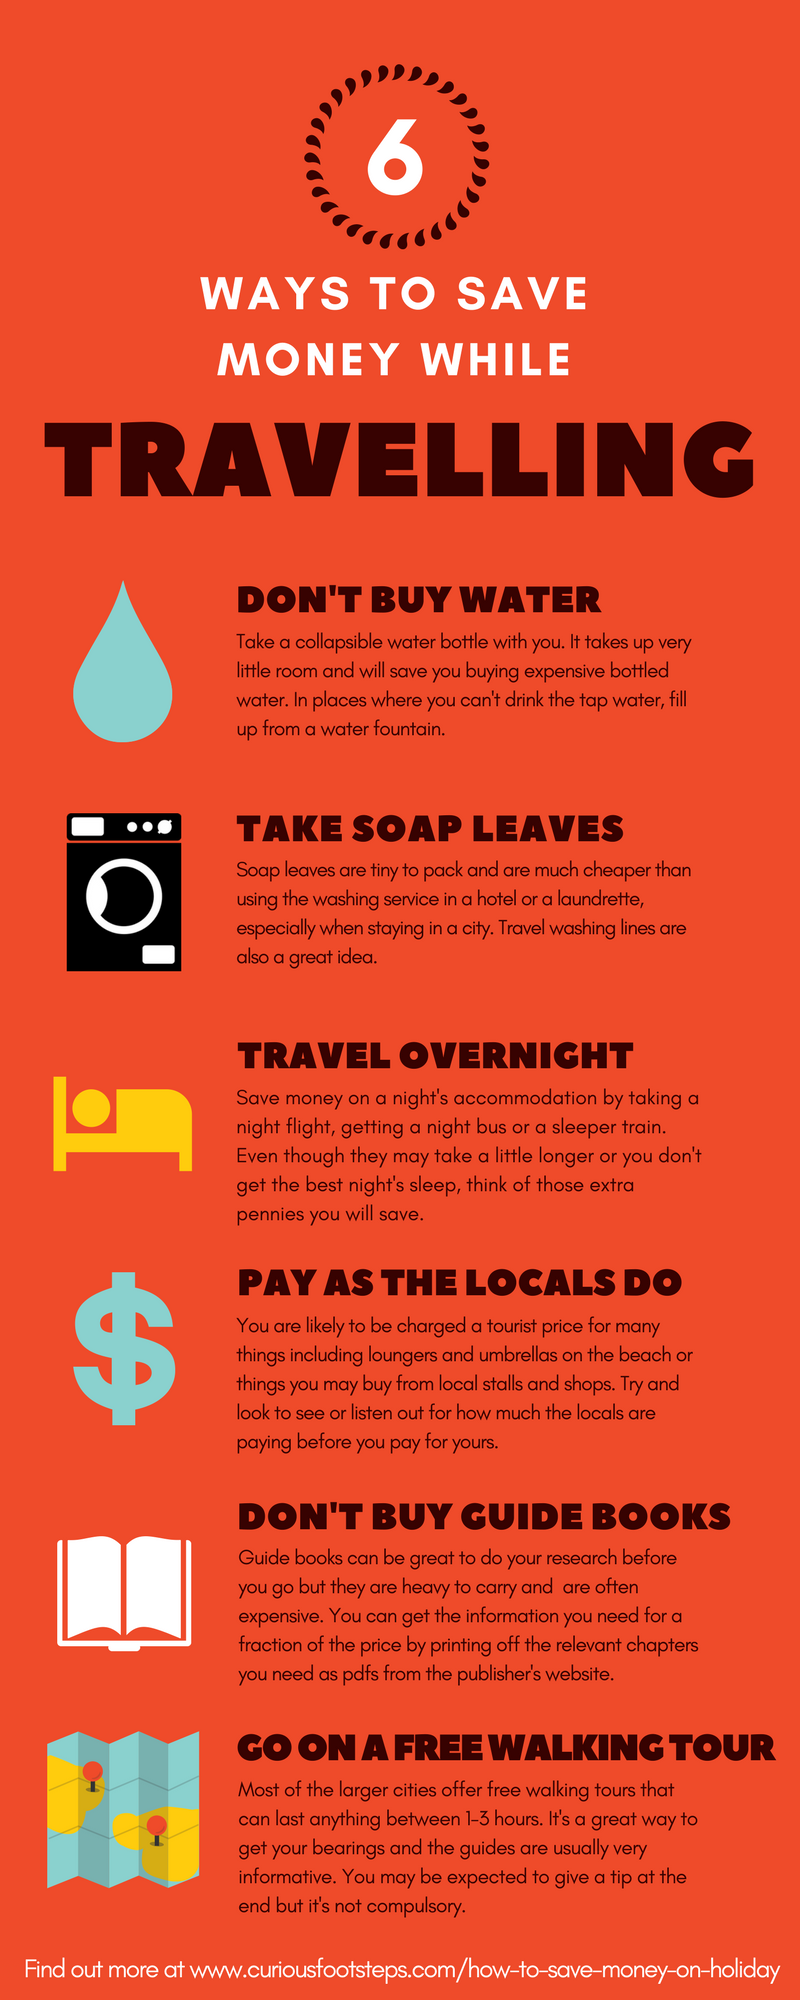 Top tips to save money whilst on holiday or travelling. For more great tips check out http://curiousfootsteps.com/how-to-save-money-on-holiday  Happy travels! :)